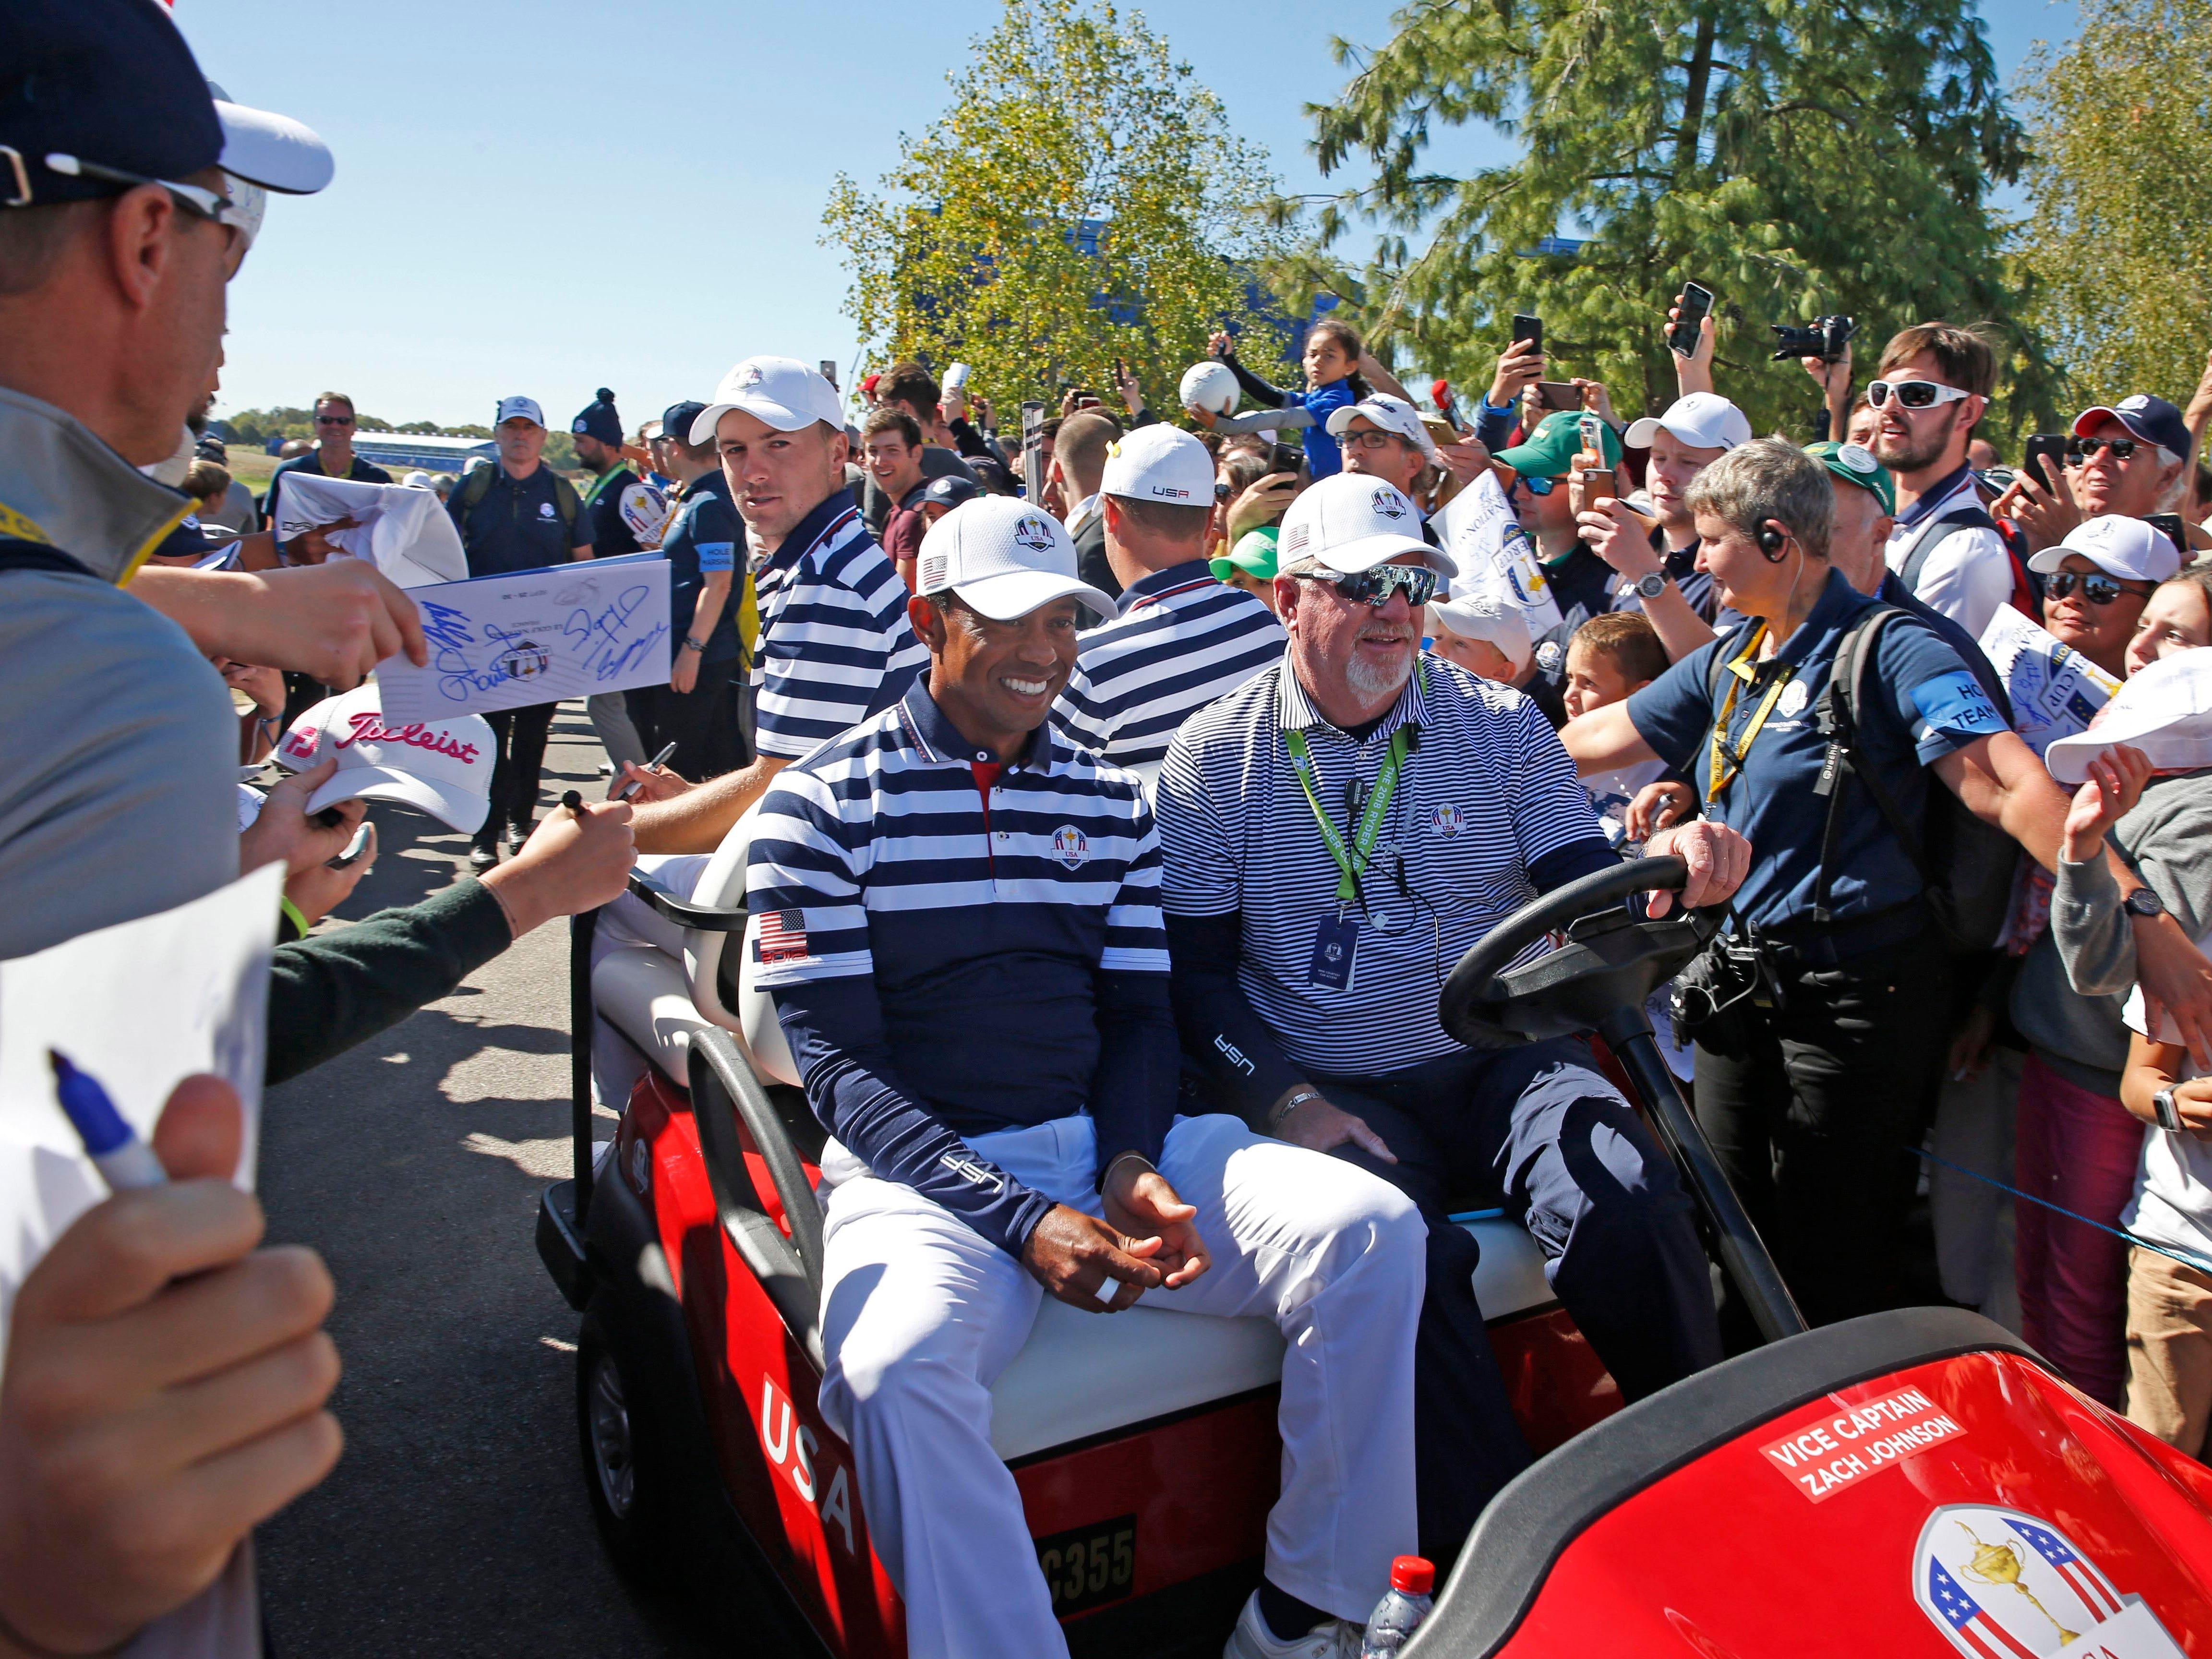 USA golfer Tiger Woods gets a ride on a golf cart to the locker room during a Ryder Cup practice round.